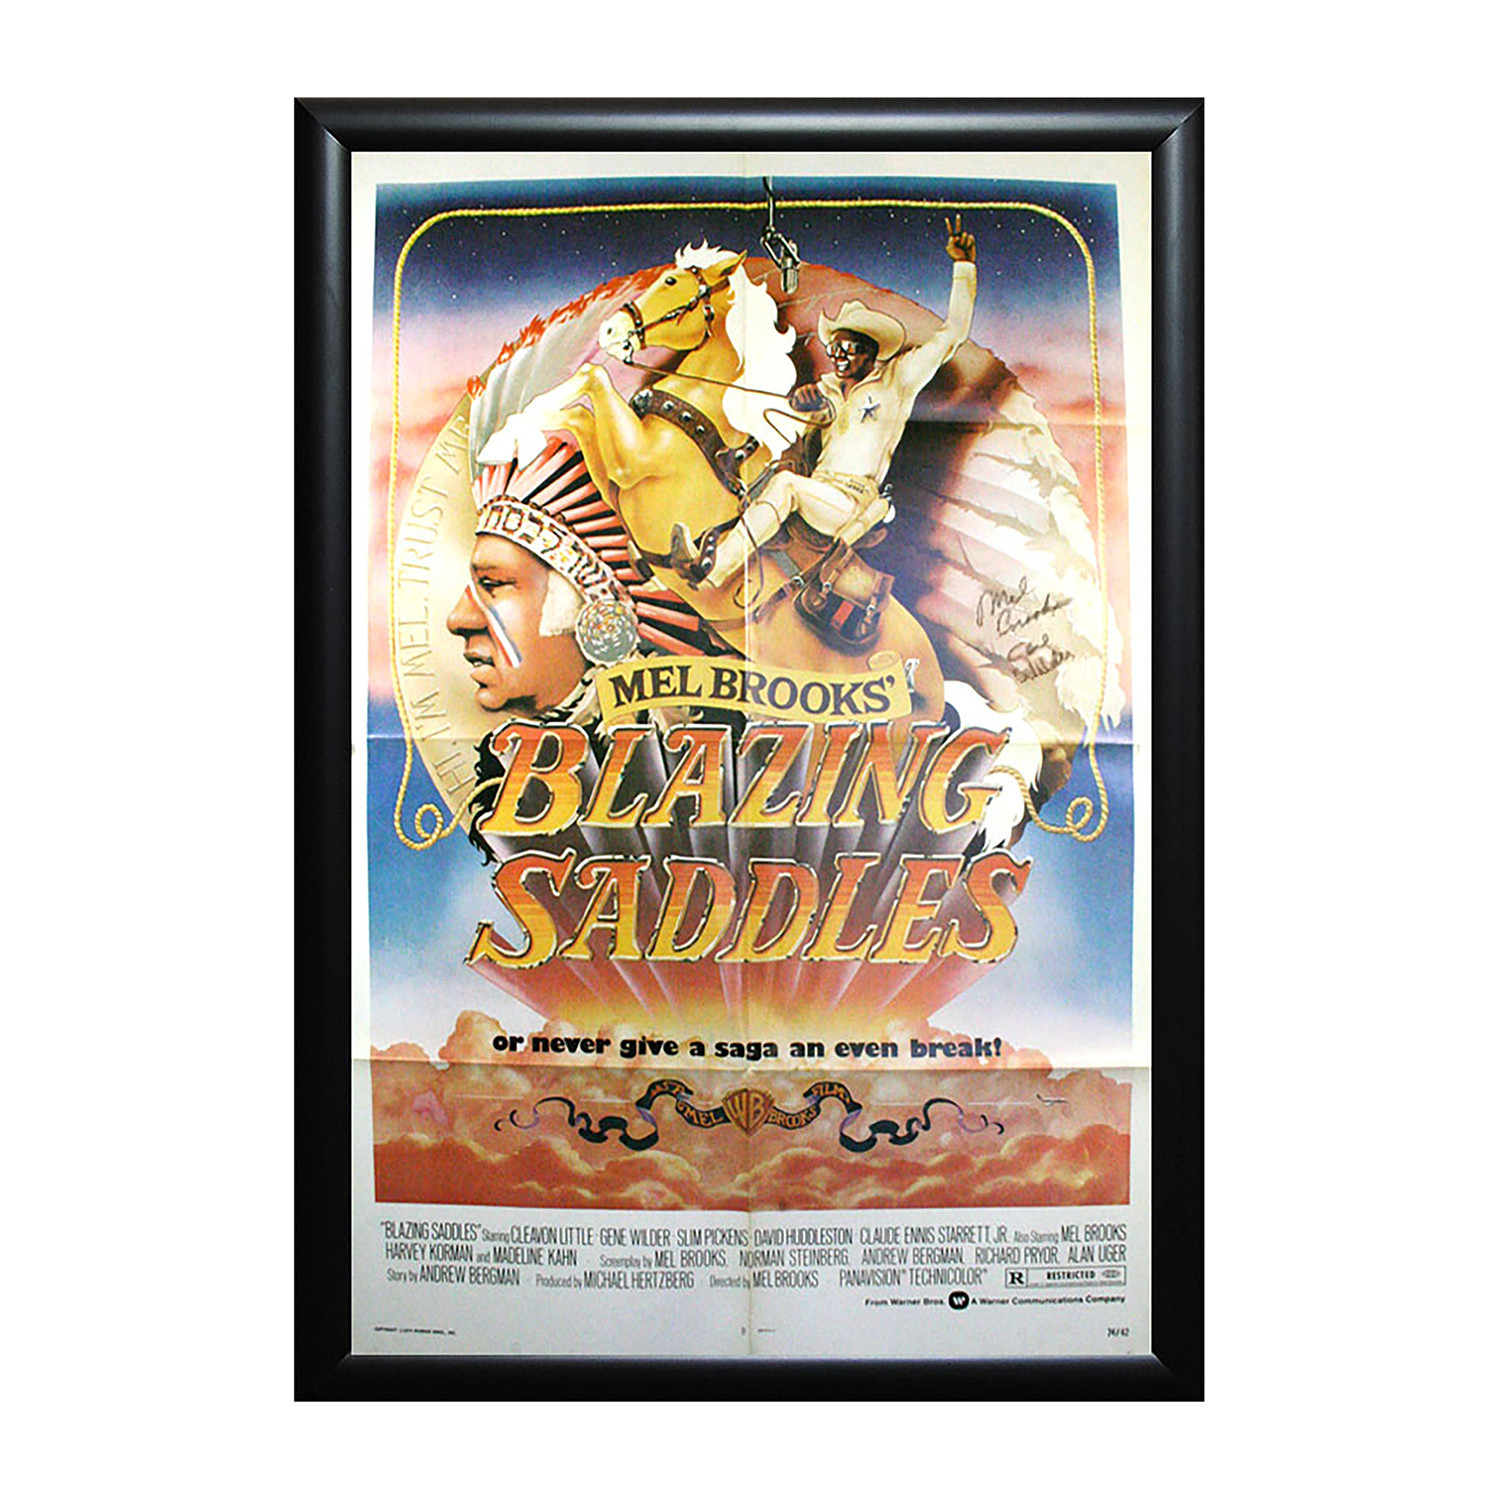 Find great deals on eBay for blazing saddles dvd. Shop with confidence.